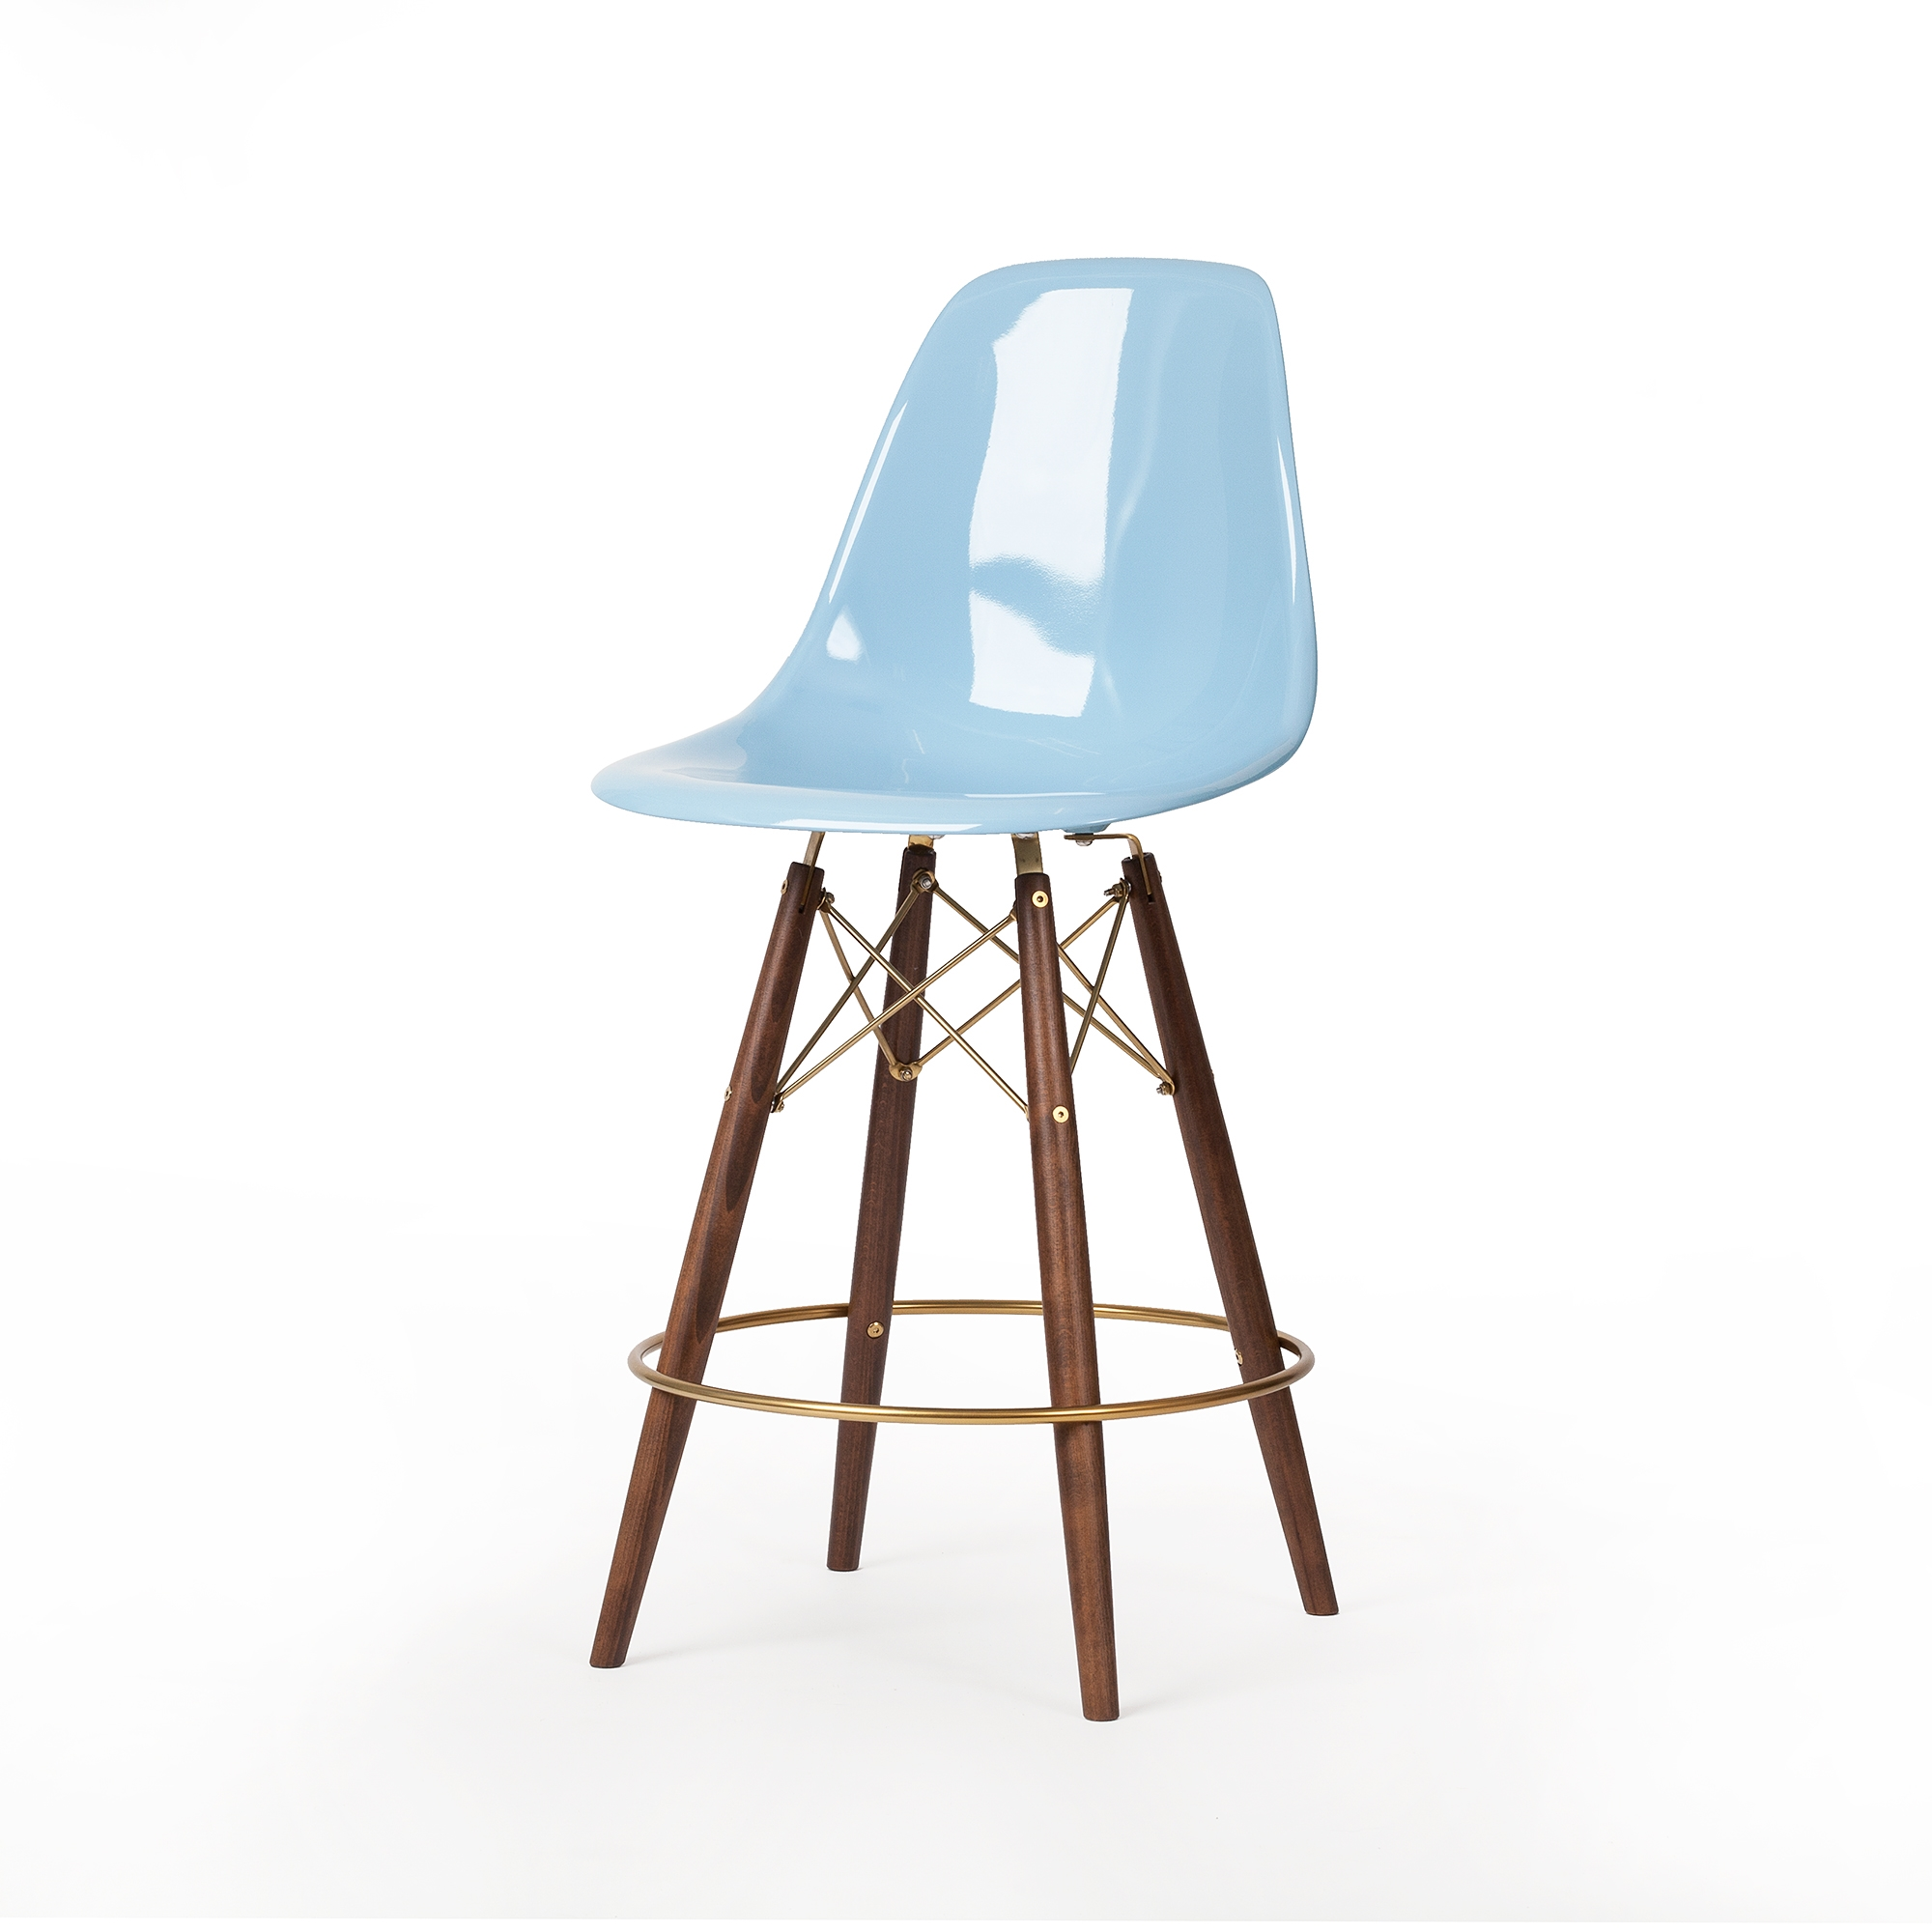 Astonishing Molded Light Blue Fiberglass Midcentury Modern Counter Stool Champagne Gold Detail Pabps2019 Chair Design Images Pabps2019Com